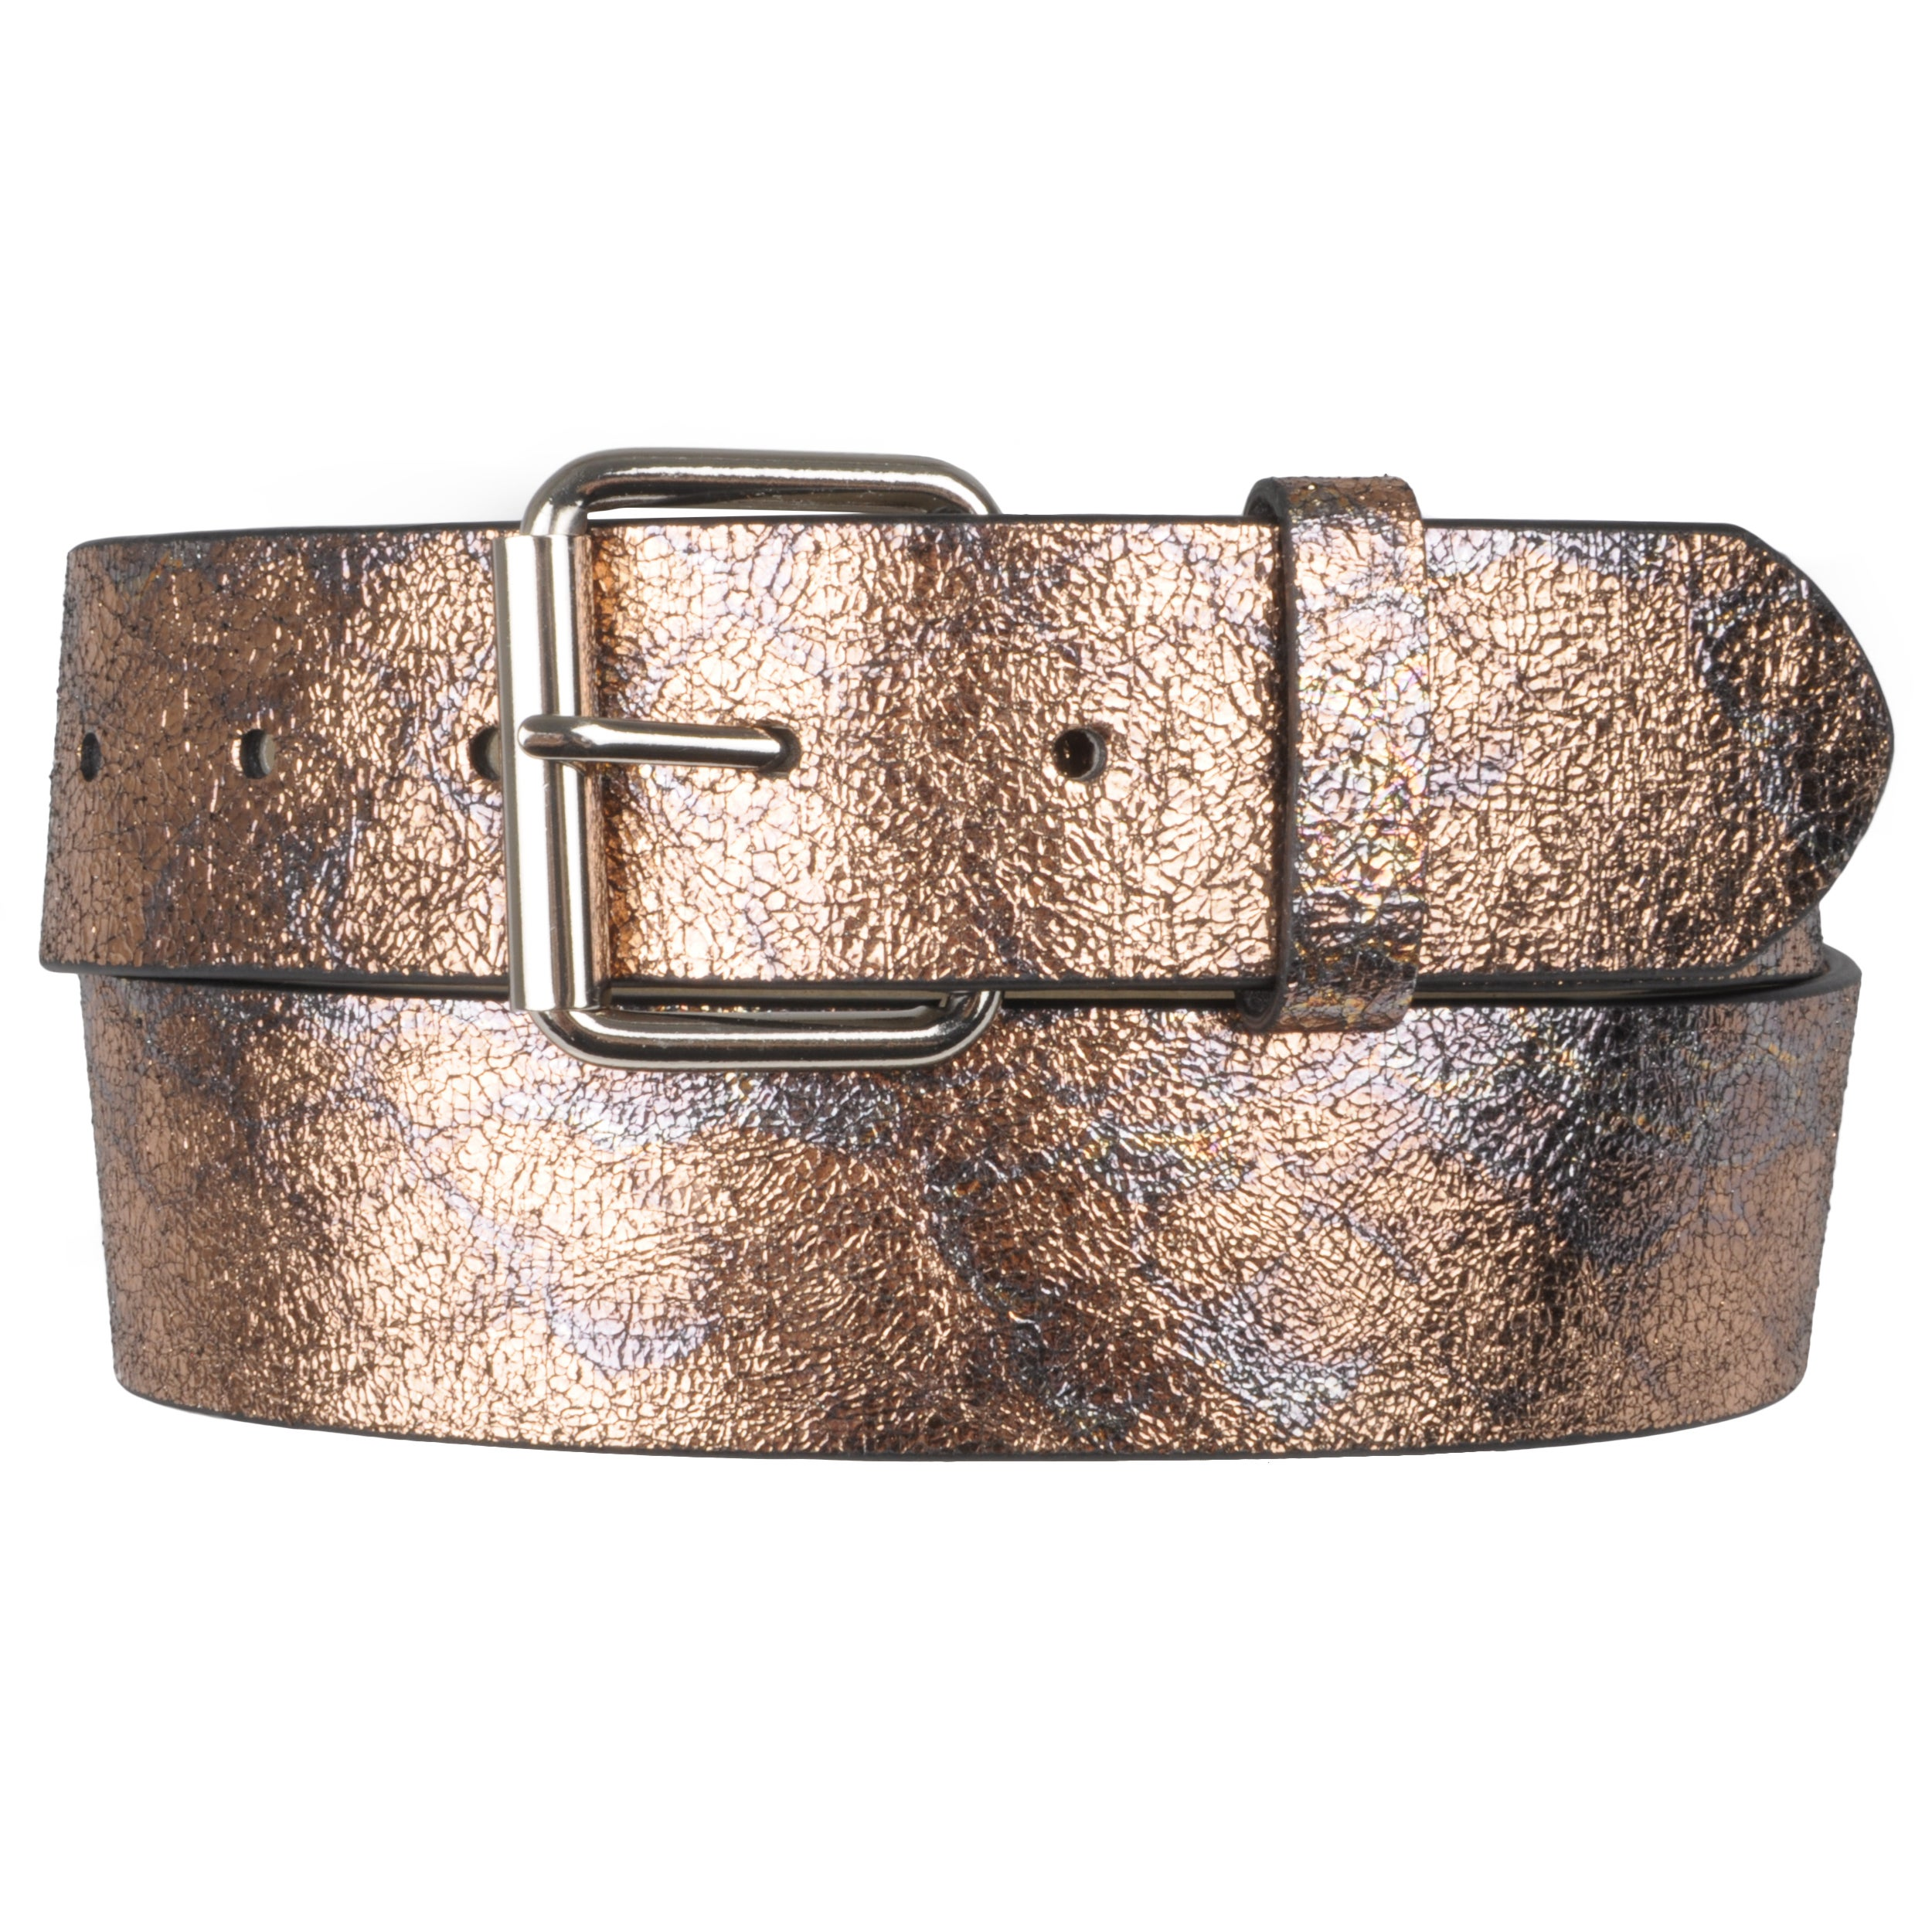 Journee Collect Women Cracked Metallic LeatherBelt